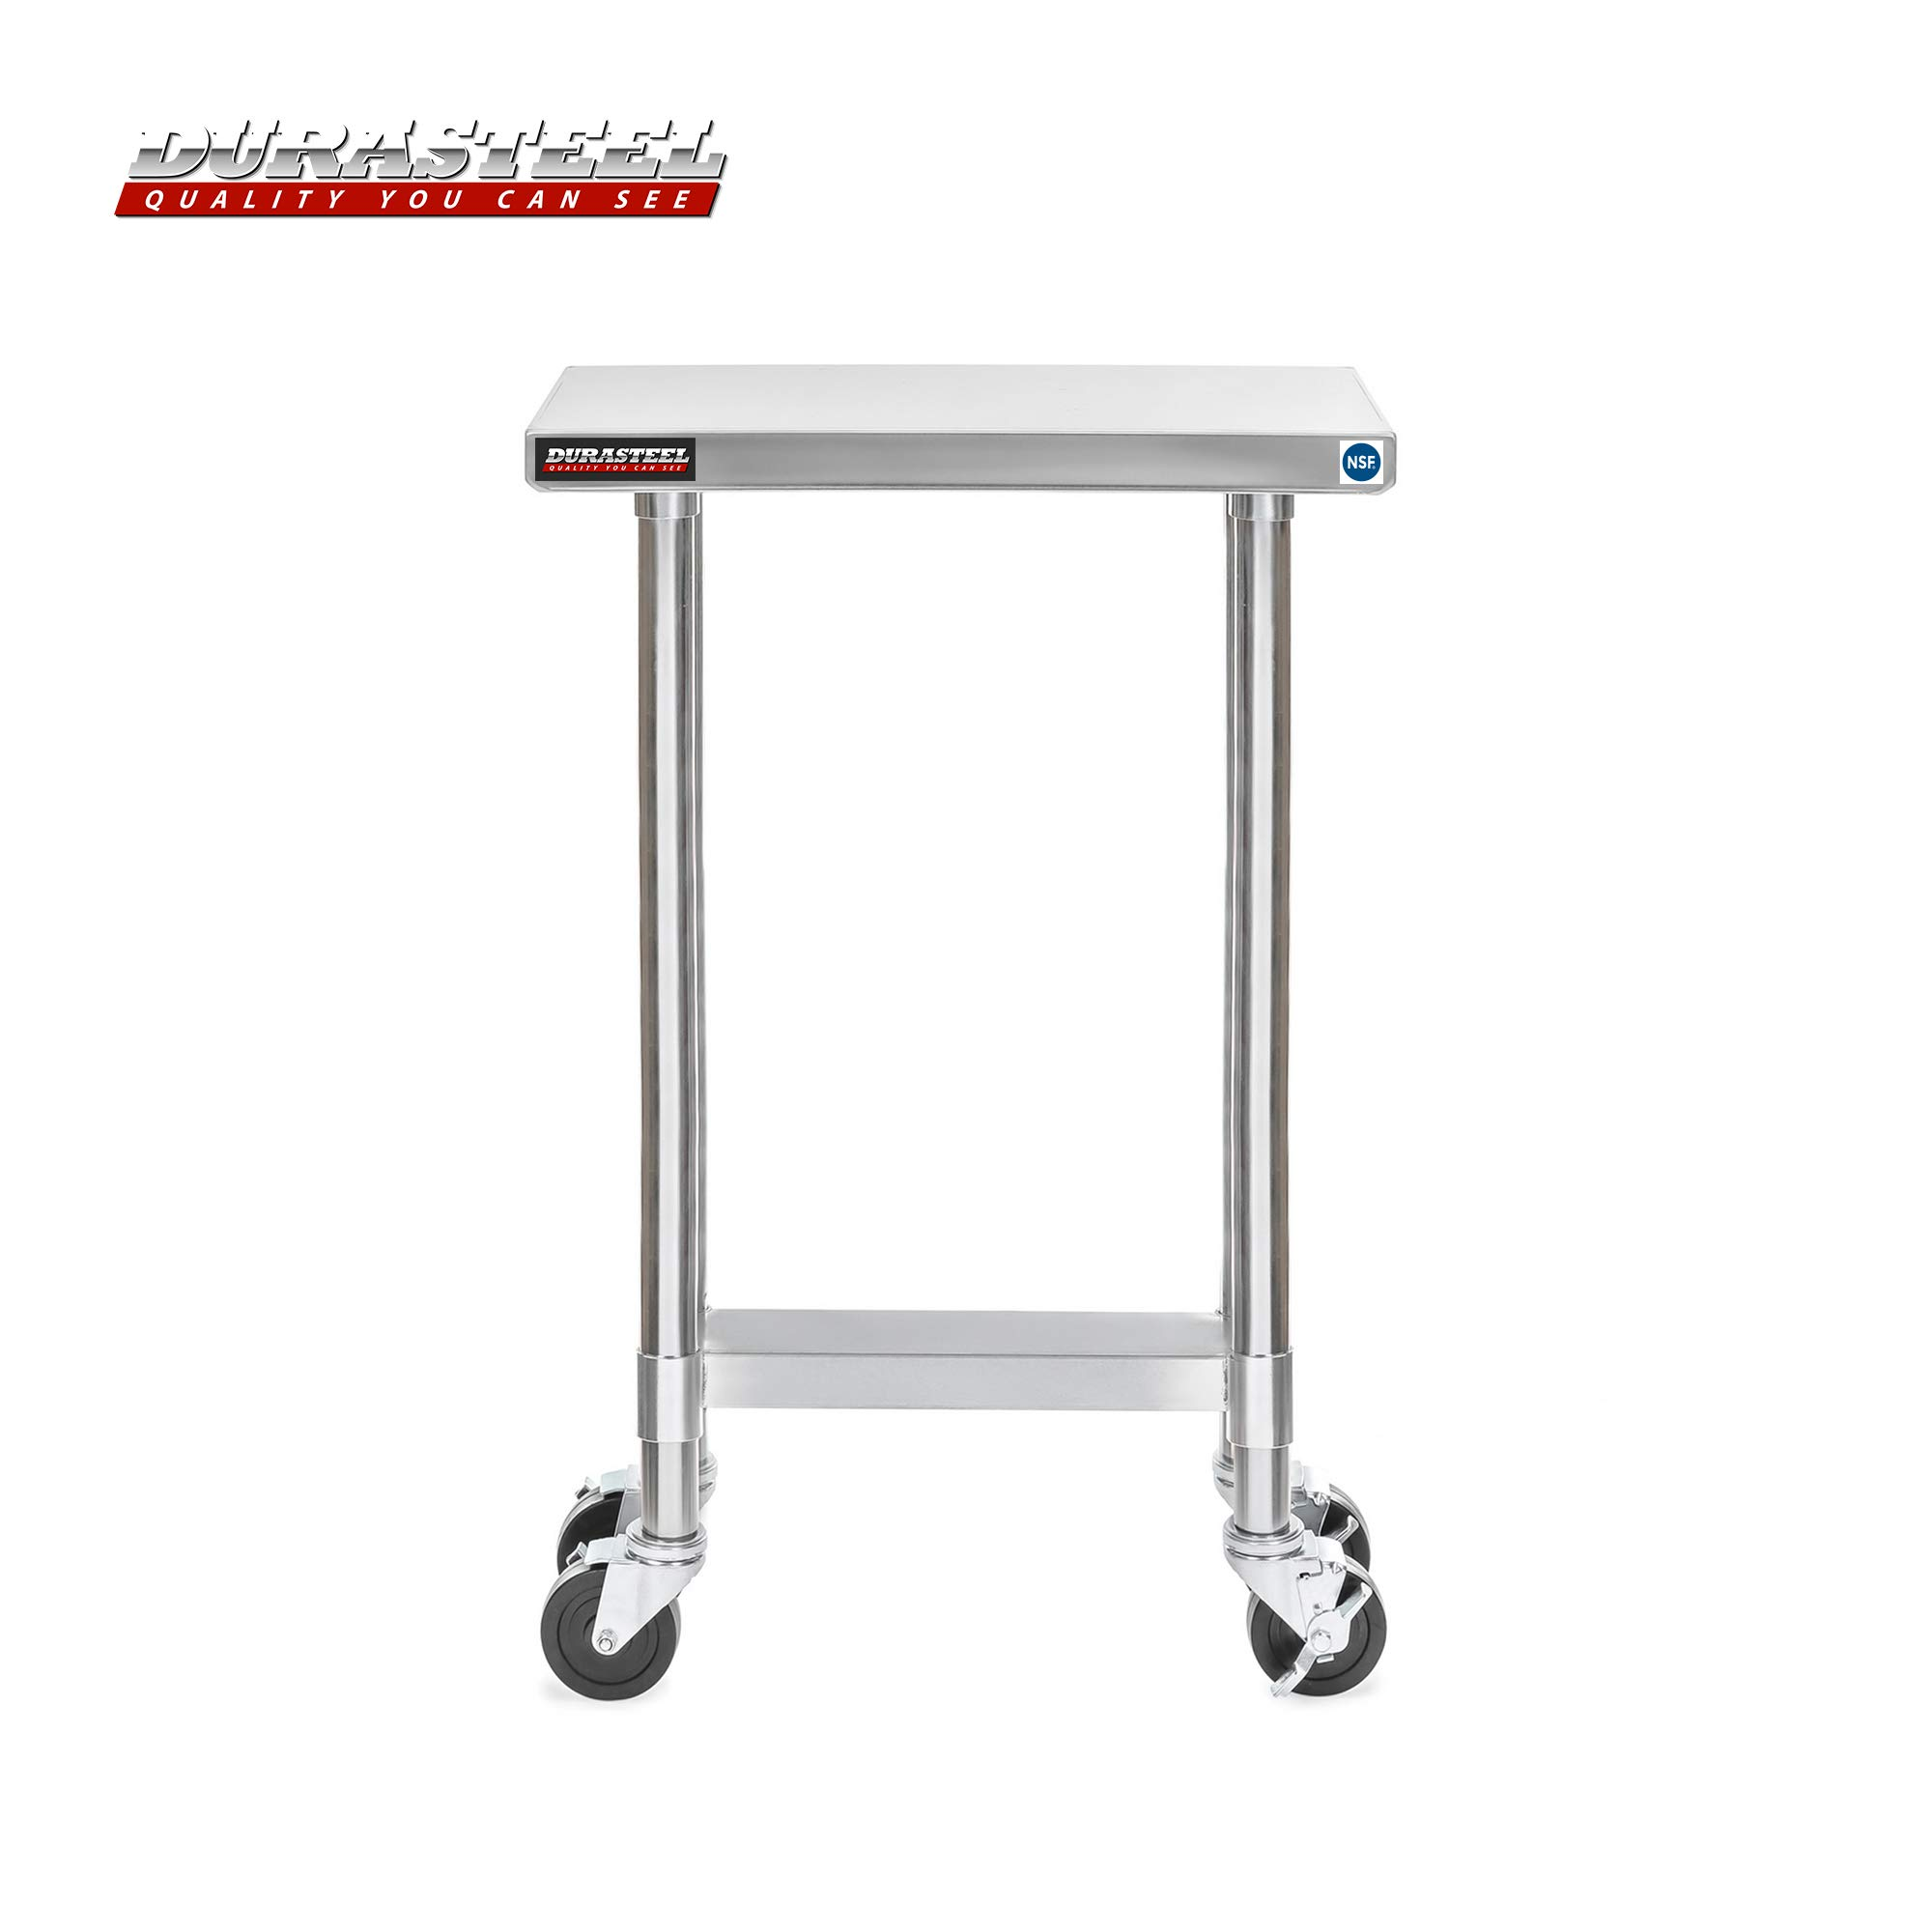 DuraSteel Stainless Steel Work Table 24'' x 12'' x 34'' Height w/ 4 Caster Wheels -  Food Prep Commercial Grade Worktable - NSF Certified - Good For Restaurant, Business, Warehouse, Home, Kitchen, Garage by DuraSteel (Image #2)